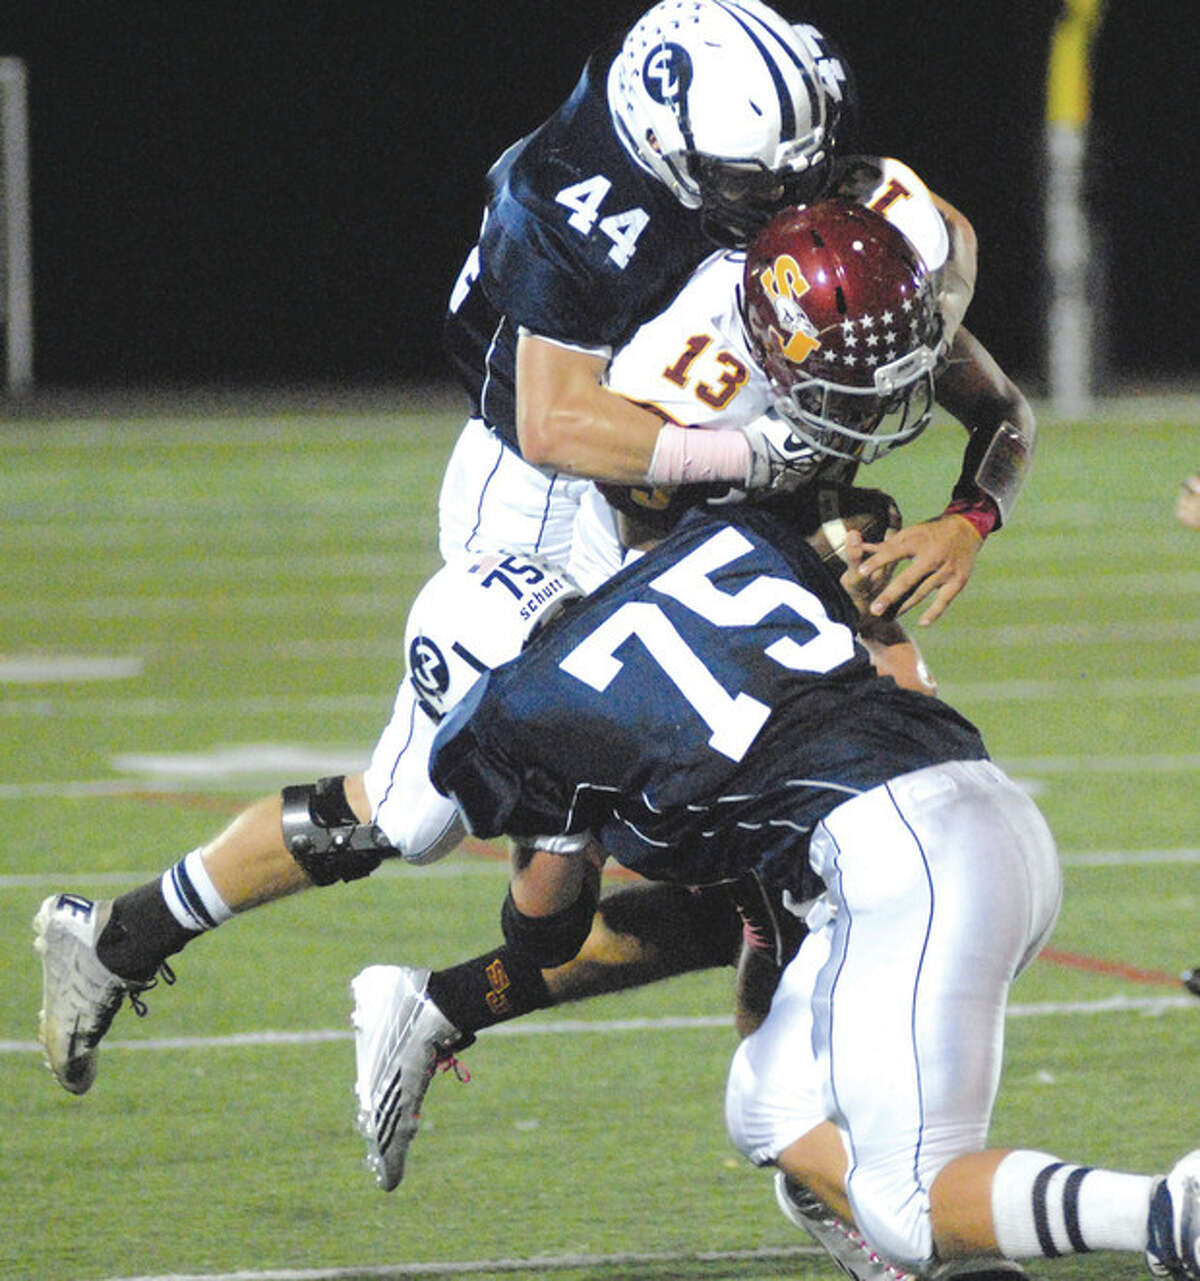 Hour photo/John Nash Wilton's Jack Dexter (44) and Tyler Mirable (75) make a Cadet sandwich out of St. Joseph quarterback Jordan Vazzano during Friday night's FCIAC football game at Fujitani Field in Wilton. Vazzano got the last laugh leading the Cadets to a 44-20 victory.